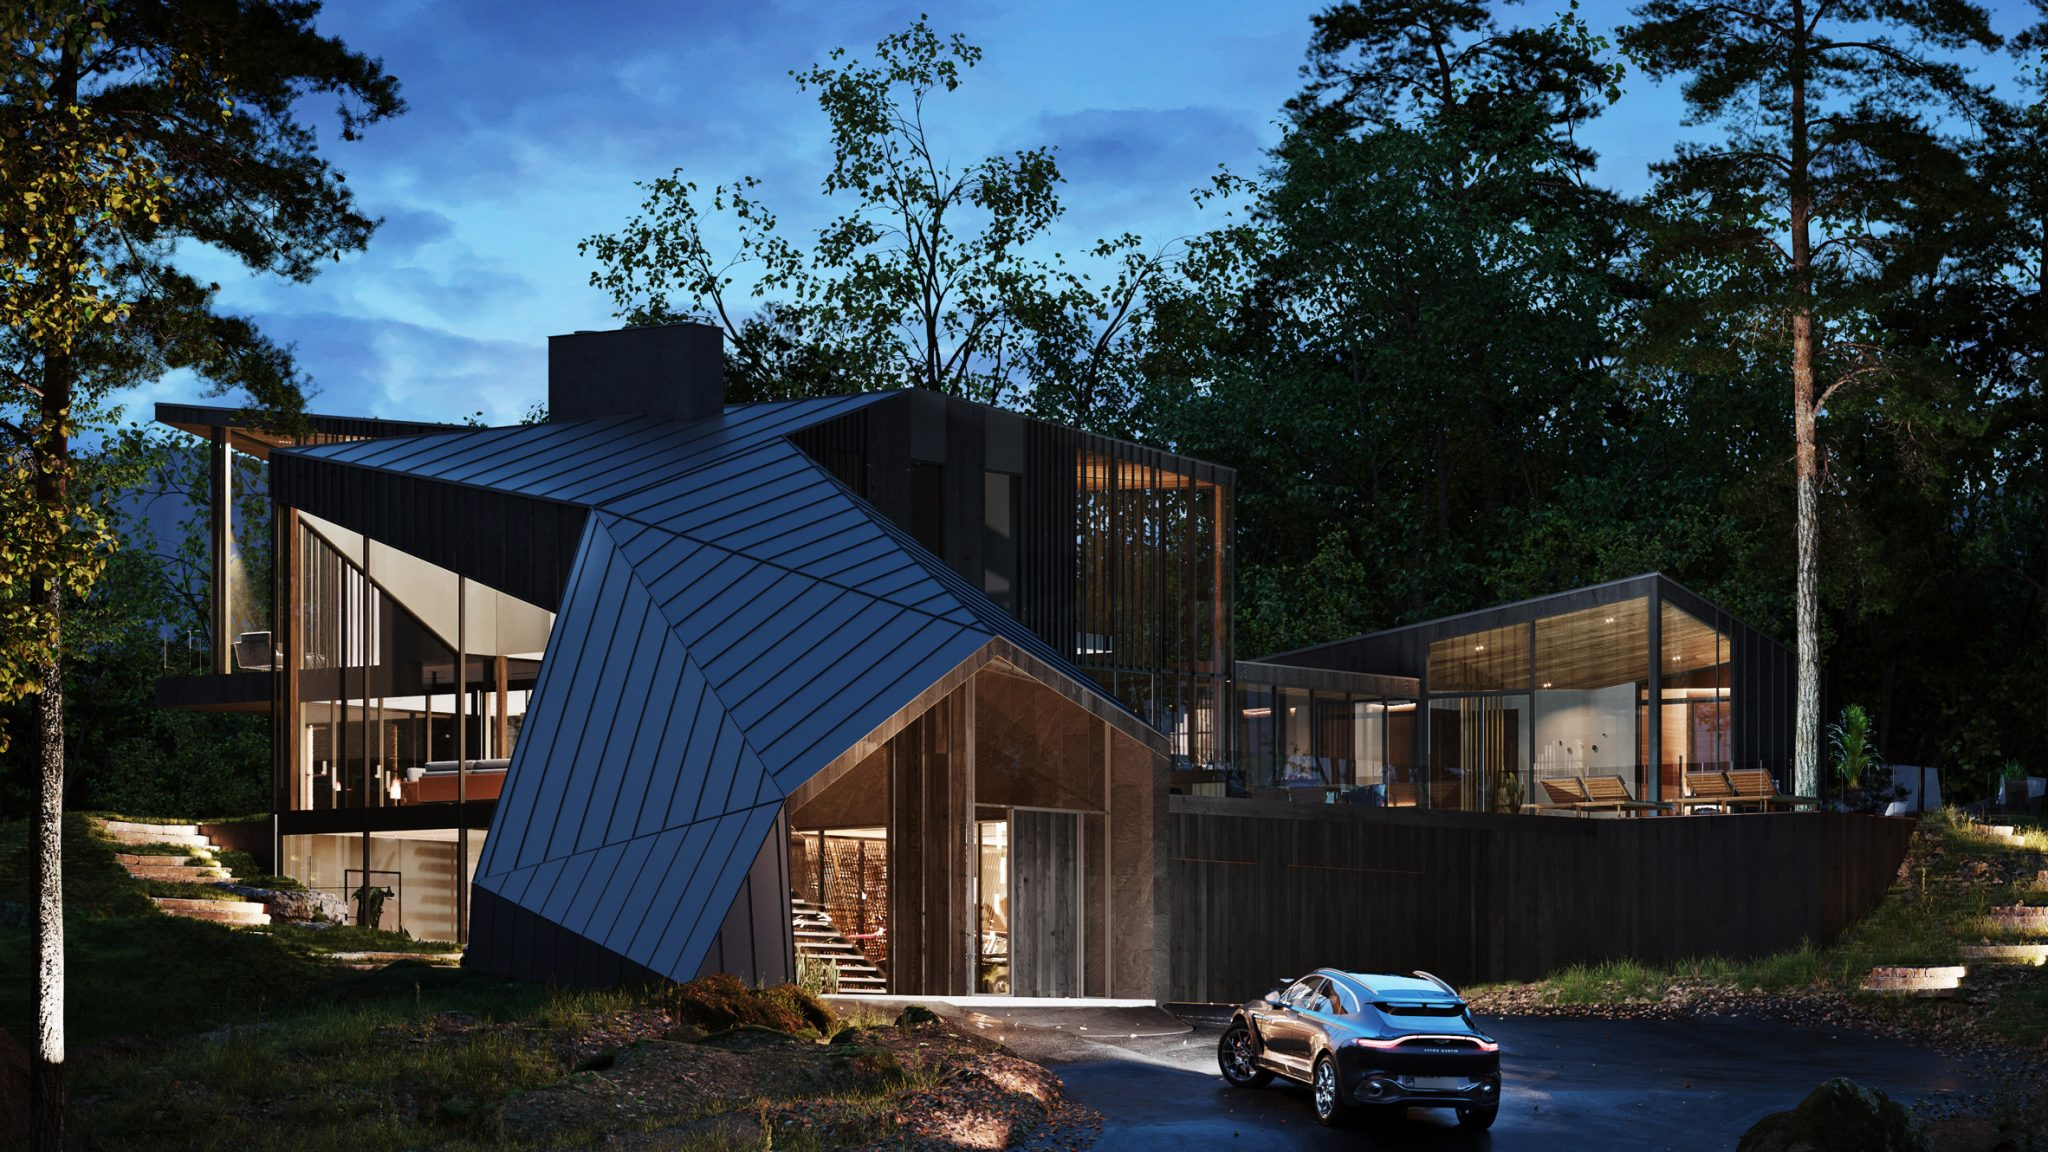 Aston Martin Teams With S3 Architecture For Its First Secret Lair Home